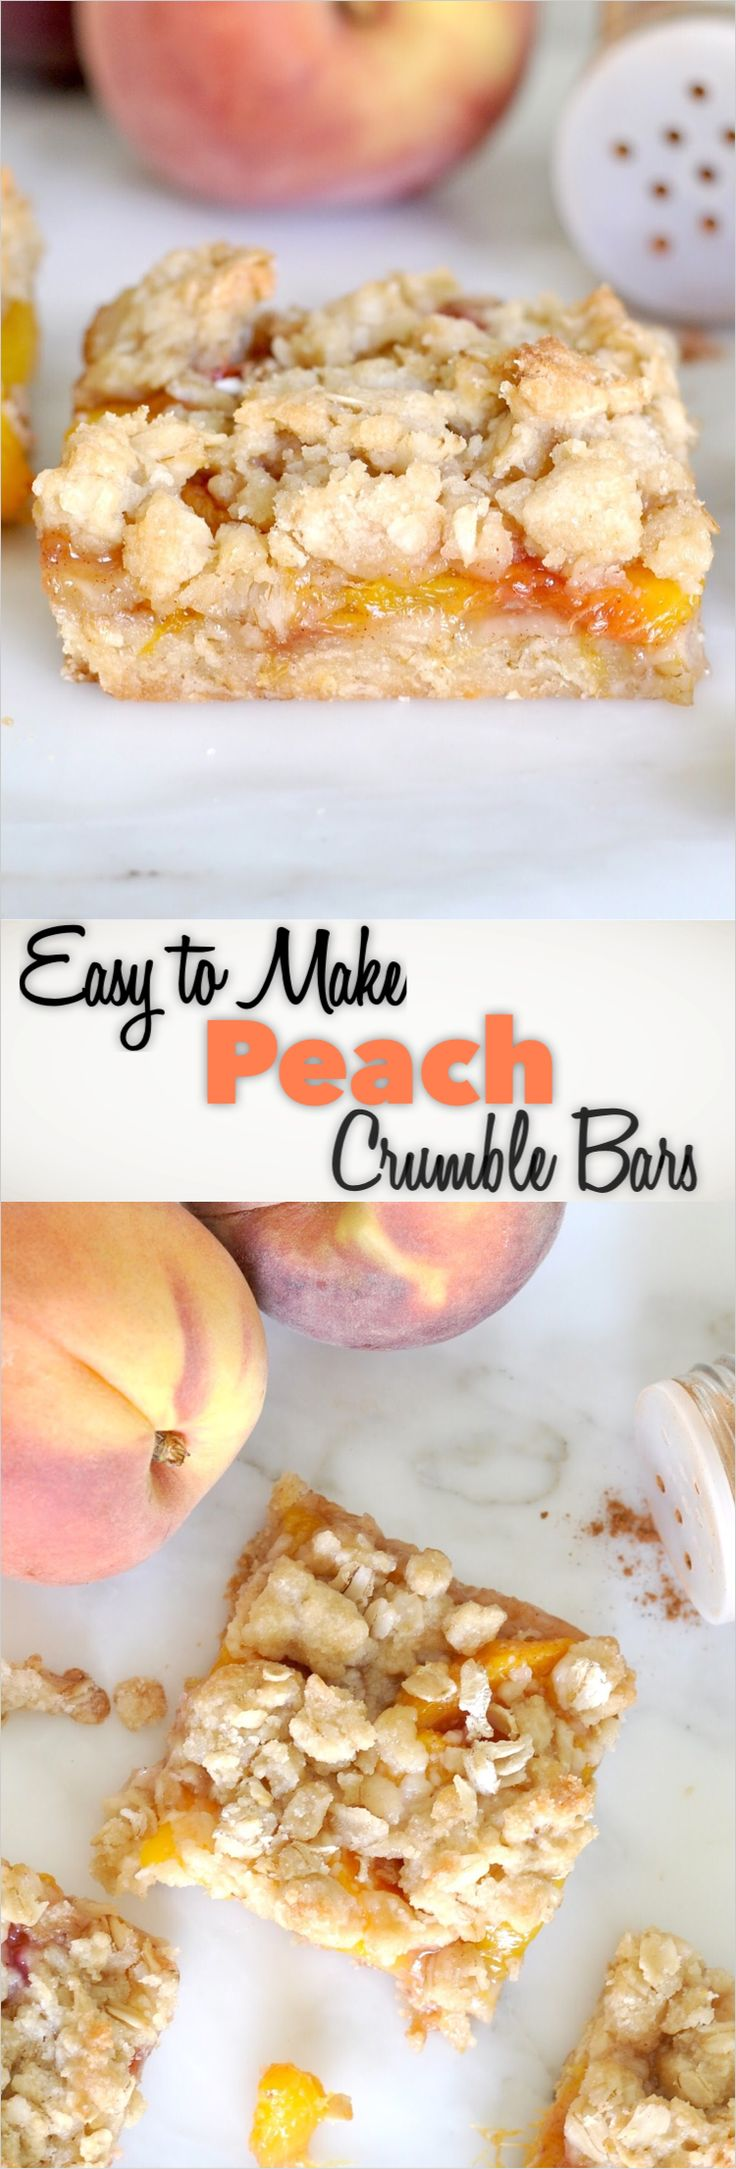 Easy-to-make Peach Crumble Bars For a quick, easy and mouthwatering summer treat...